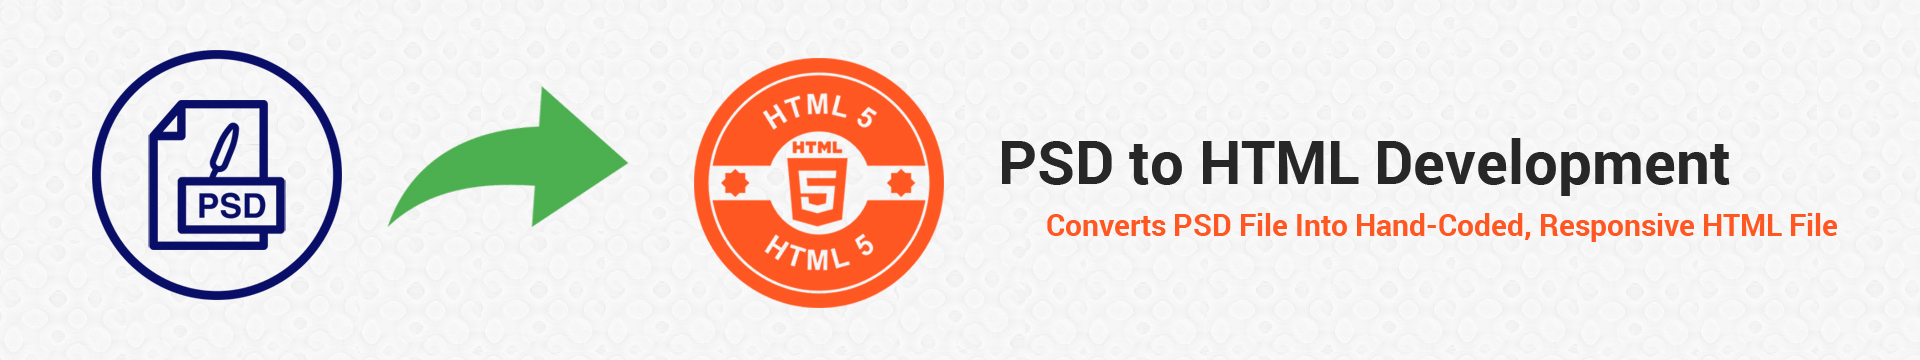 PSD to HTML Development